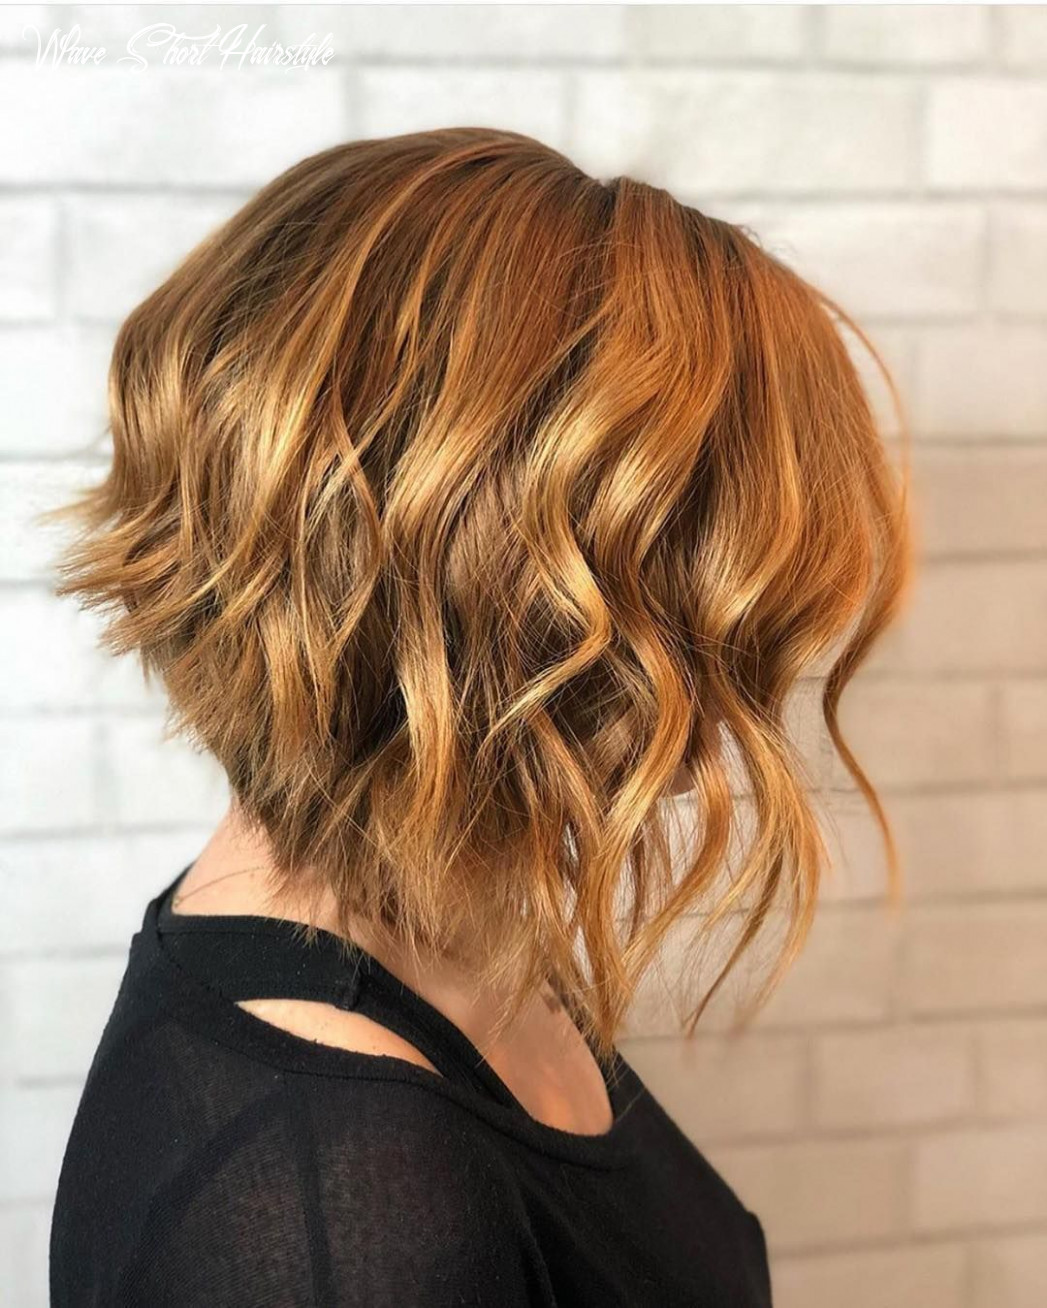 Pin on 9 short hairstyles (handpicked) wave short hairstyle